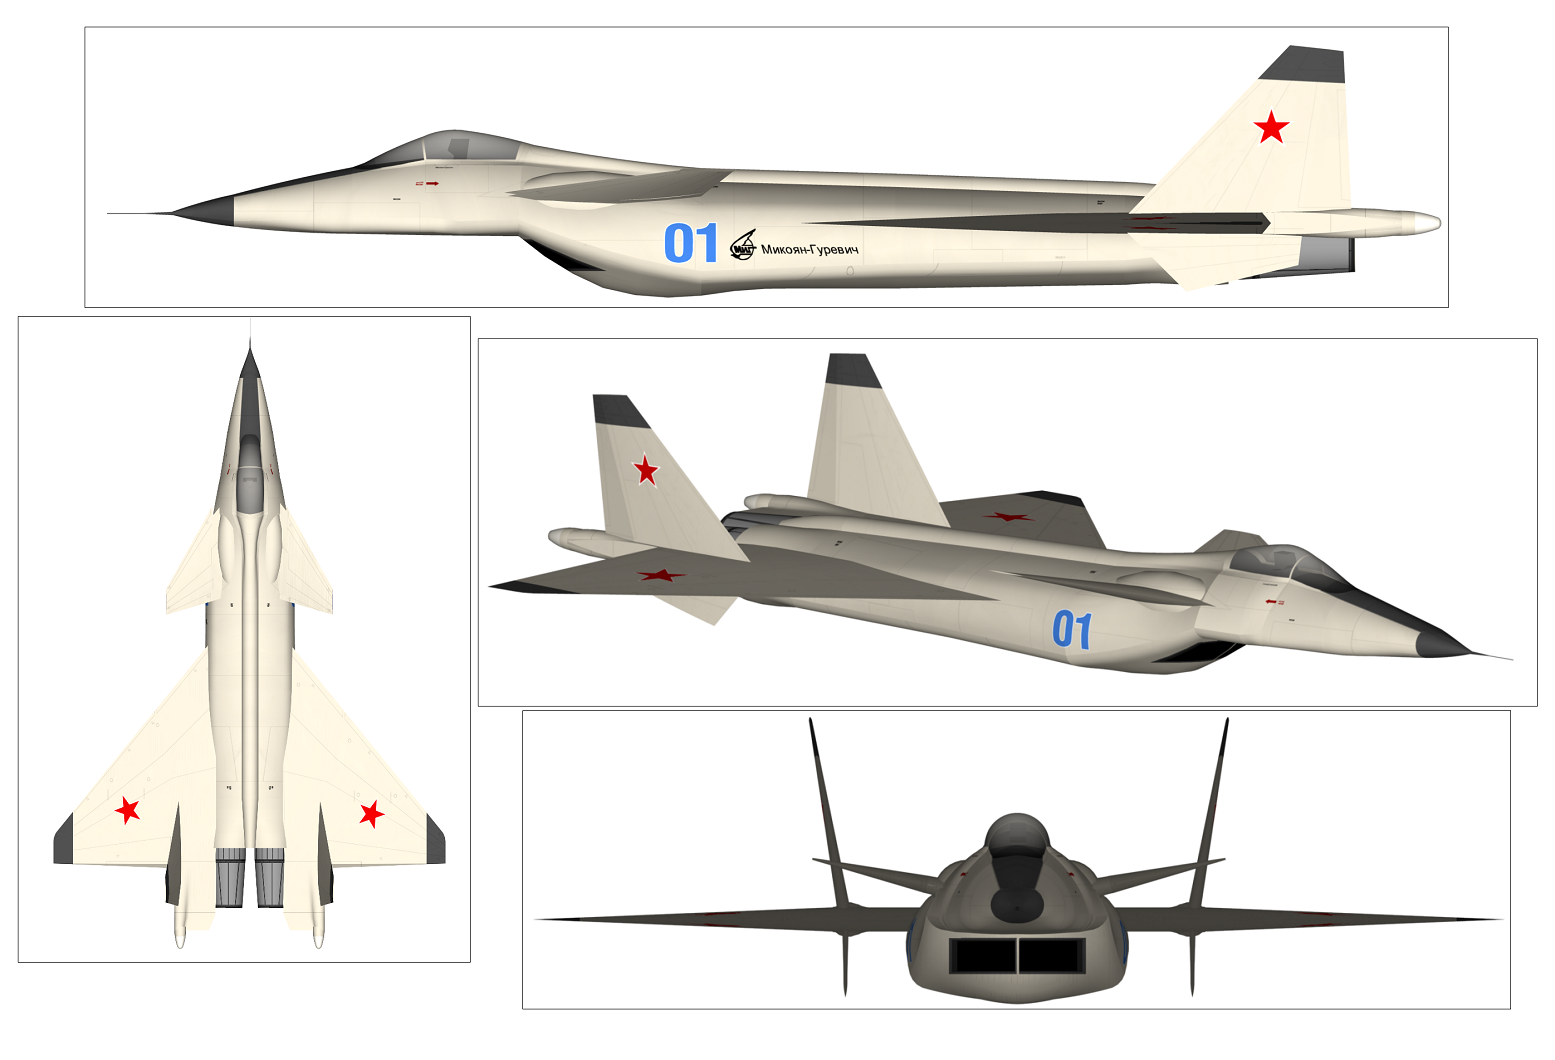 Russia's 1st 5th Generation Stealth Fighter: Meet the Secret MiG 1.44